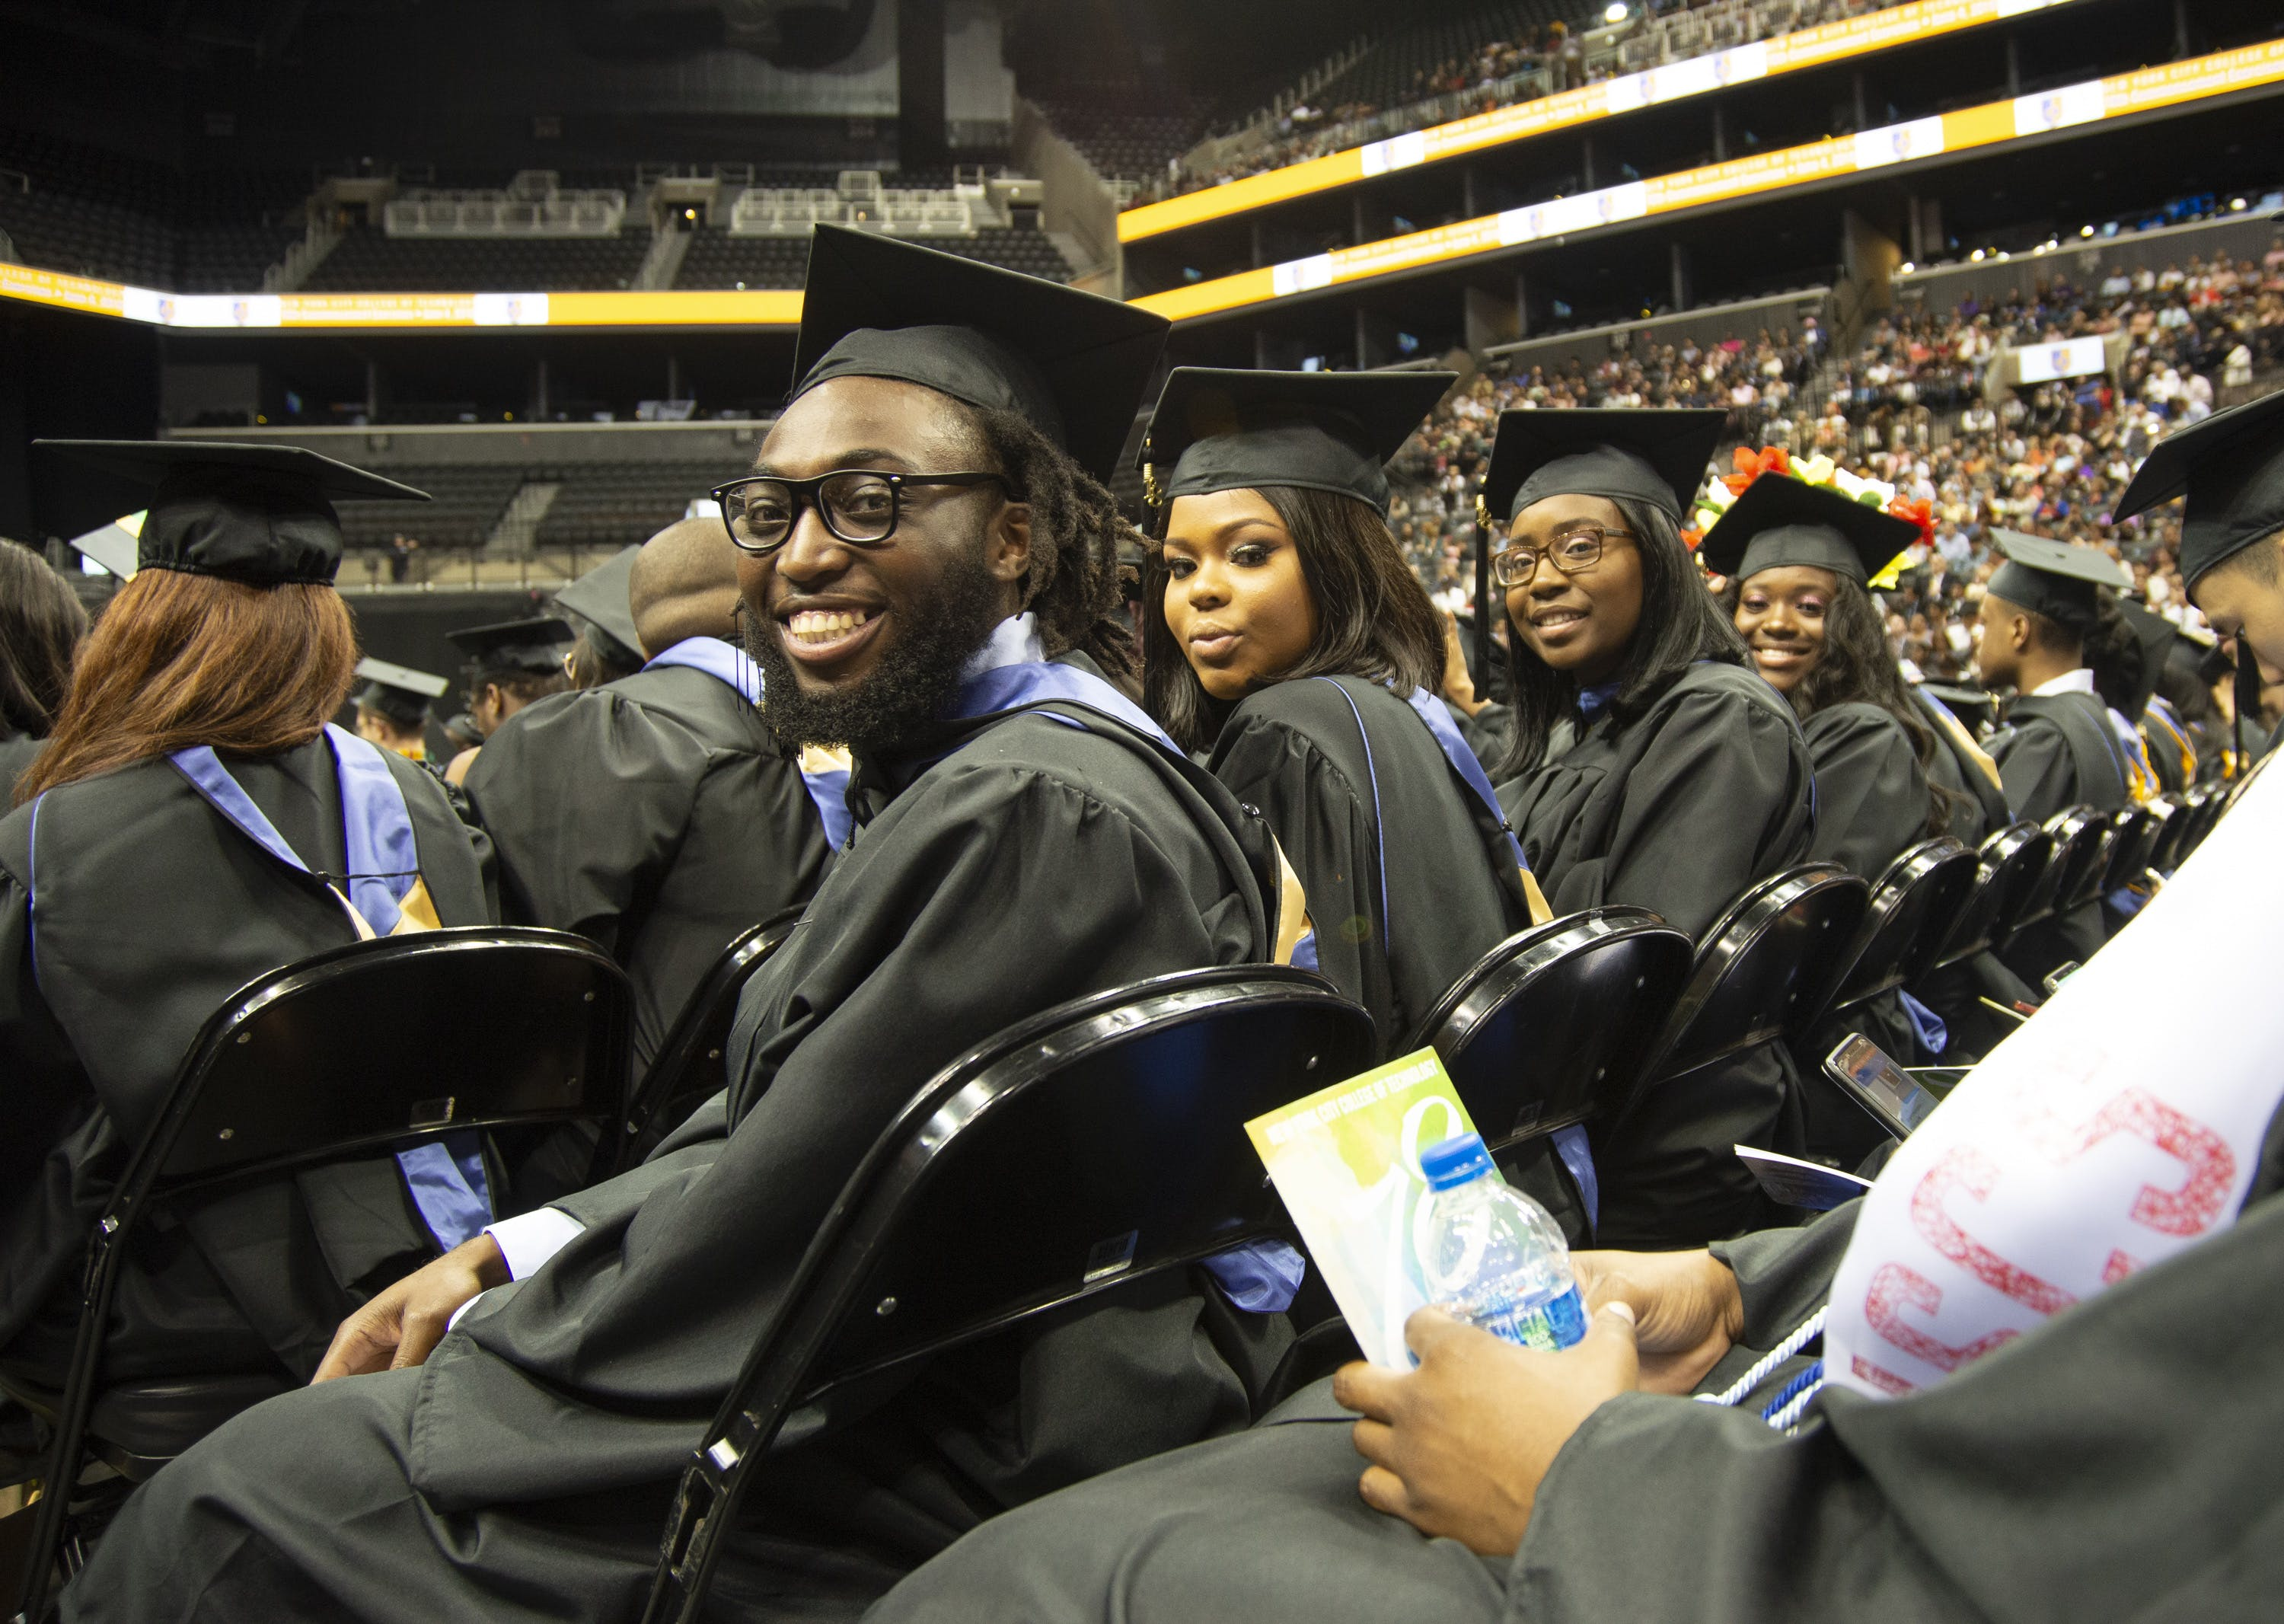 Students in caps and gowns sitting in a row at graduation